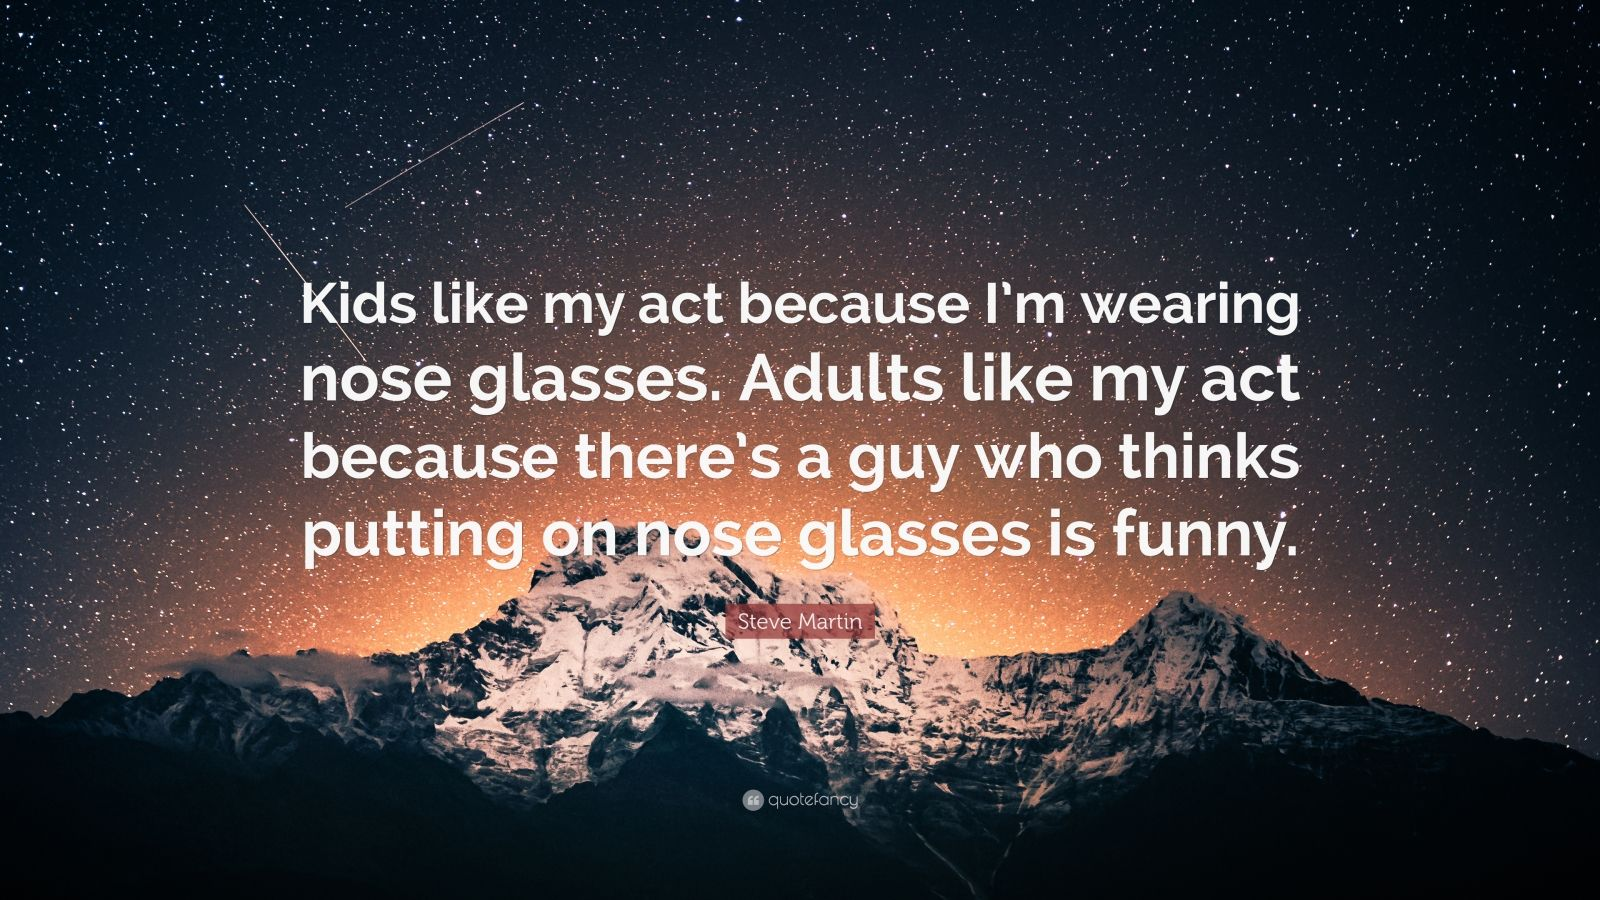 """Steve Martin Quote: """"Kids like my act because I'm wearing nose glasses. Adults like my act because there's a guy who thinks putting on nose glasses is funny."""""""